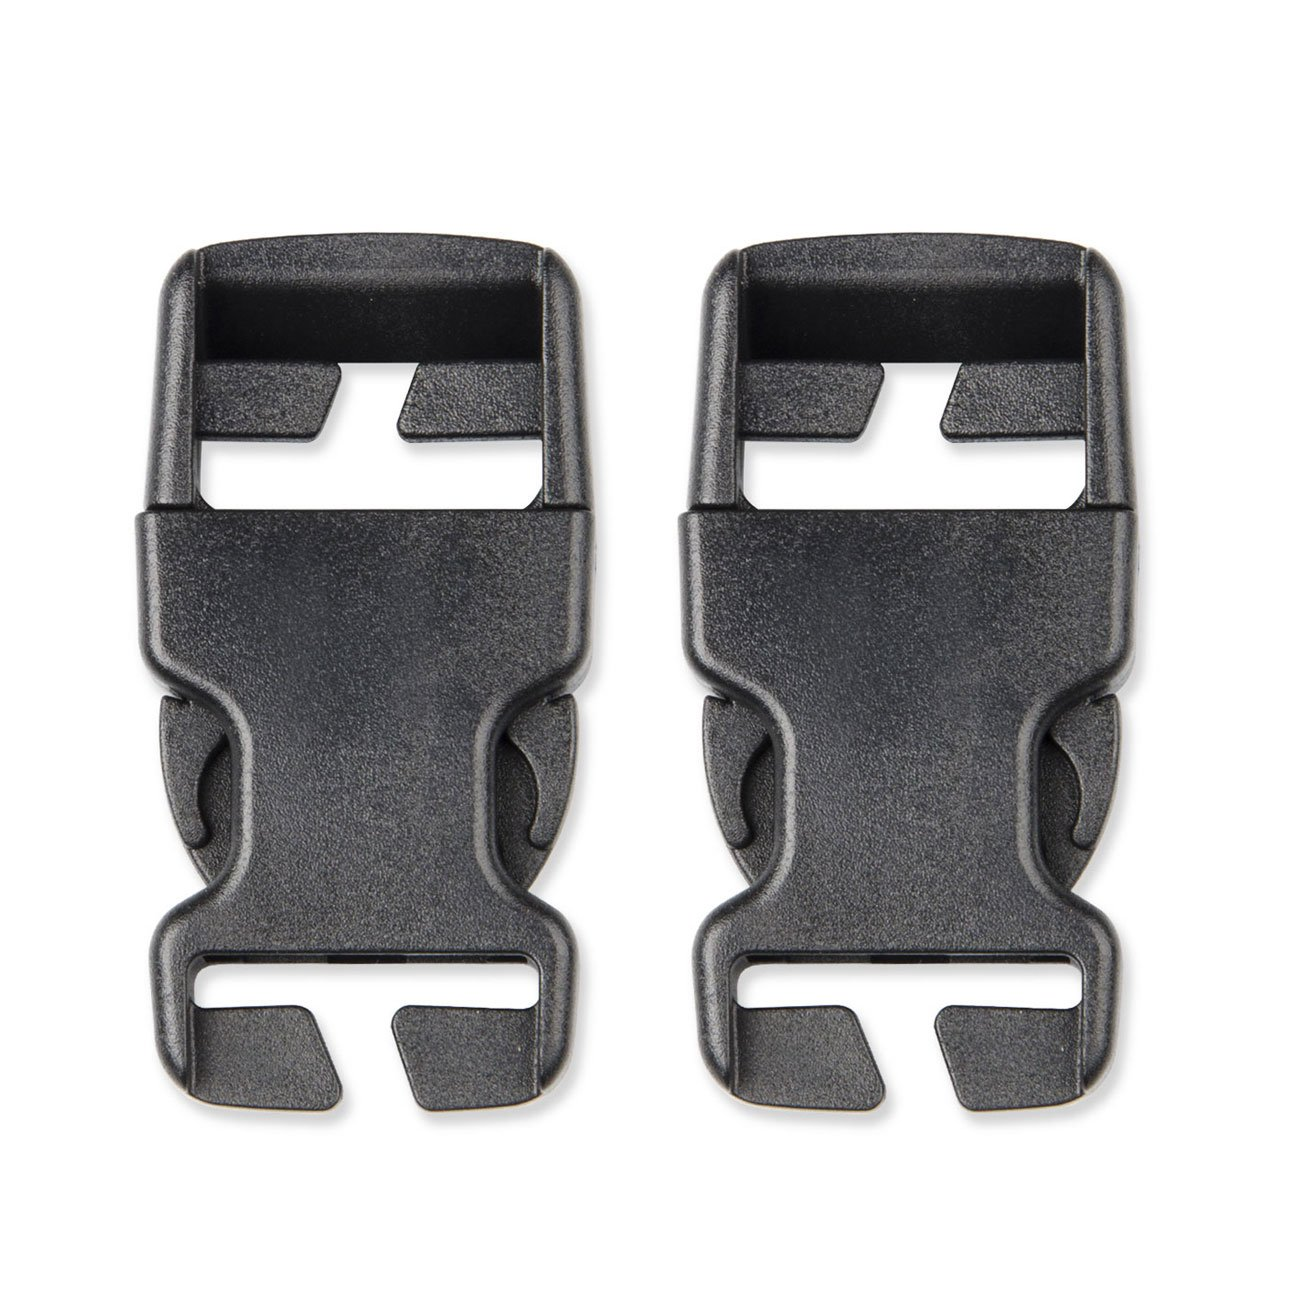 Multi-Size Plastic Buckle Repair Kit Quick Release Buckles No Sewing Required Buckles for Backpack Bag (4pcs Khaki,50 mm)